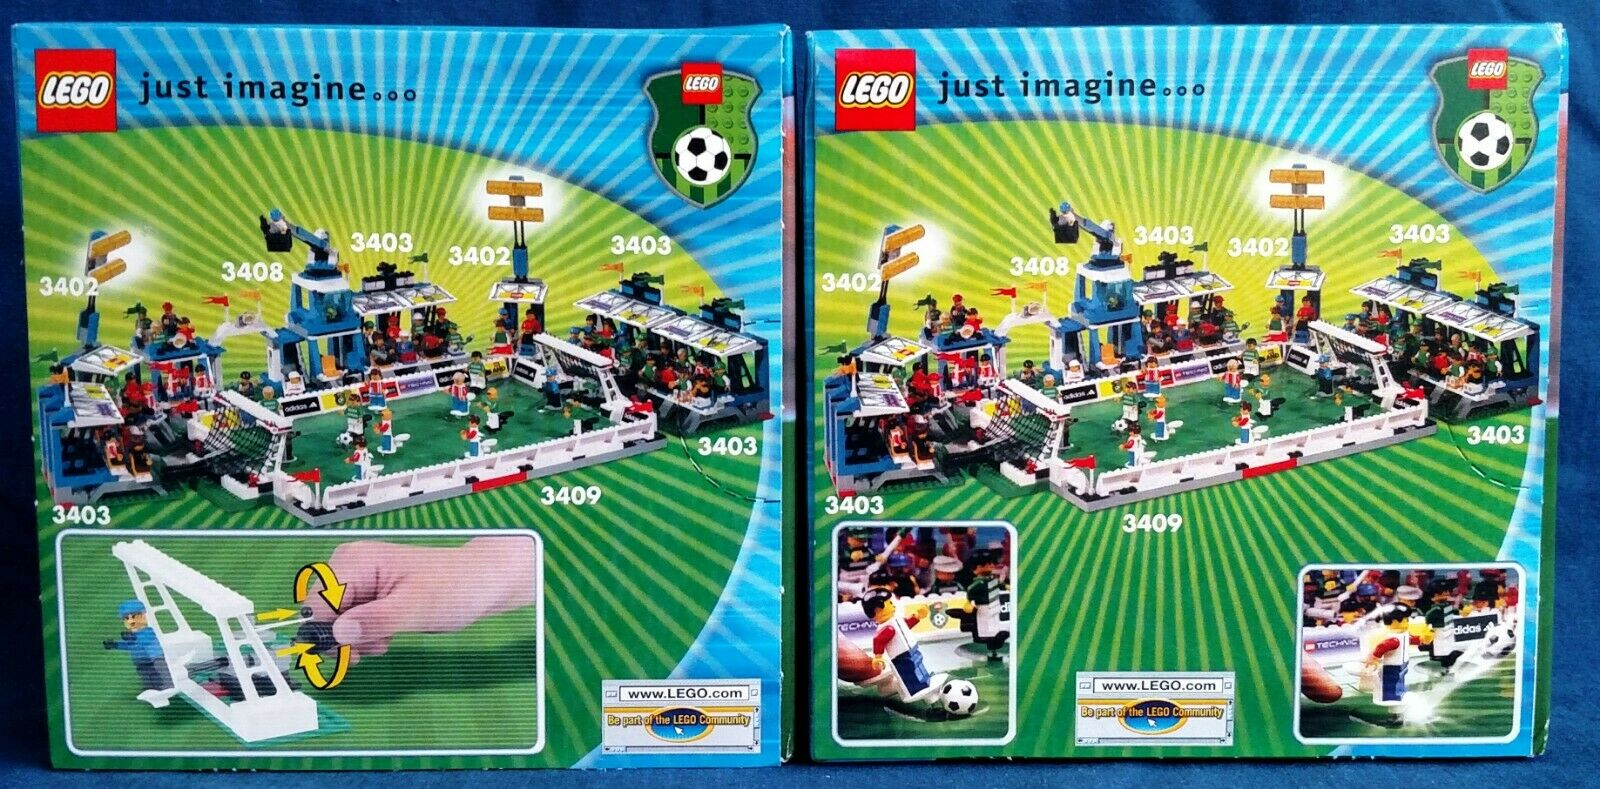 LEGO Soccer sets 3412 Point shooter